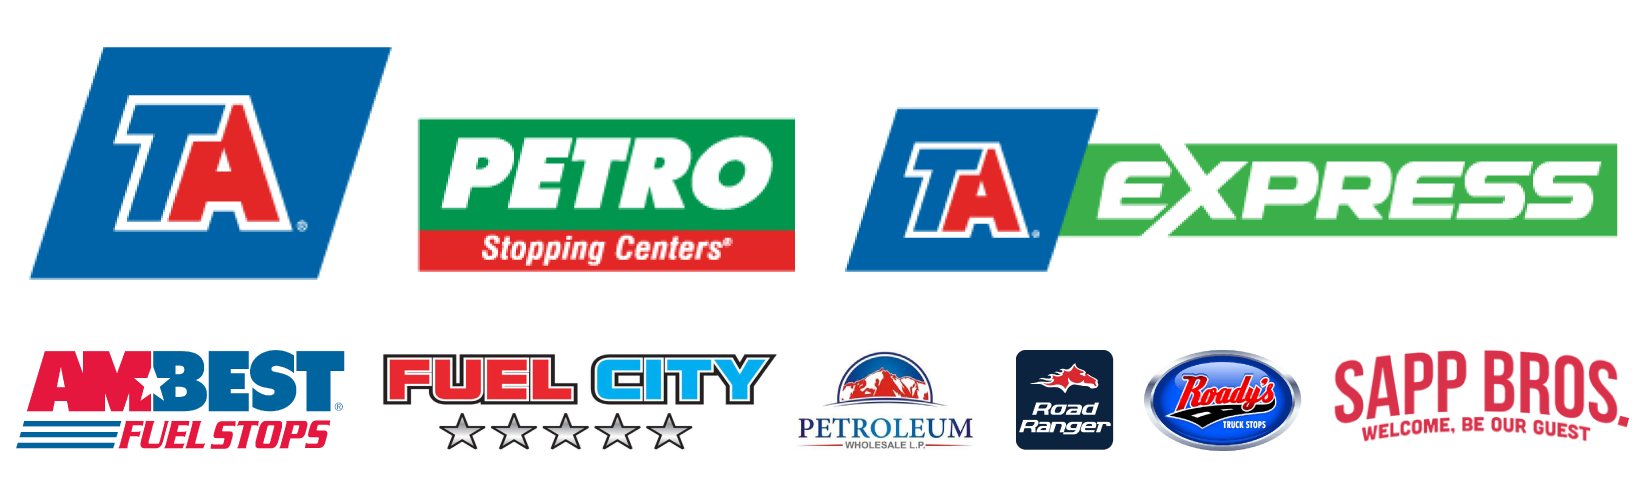 Fuel Partners for Apex TCS Fuel Card